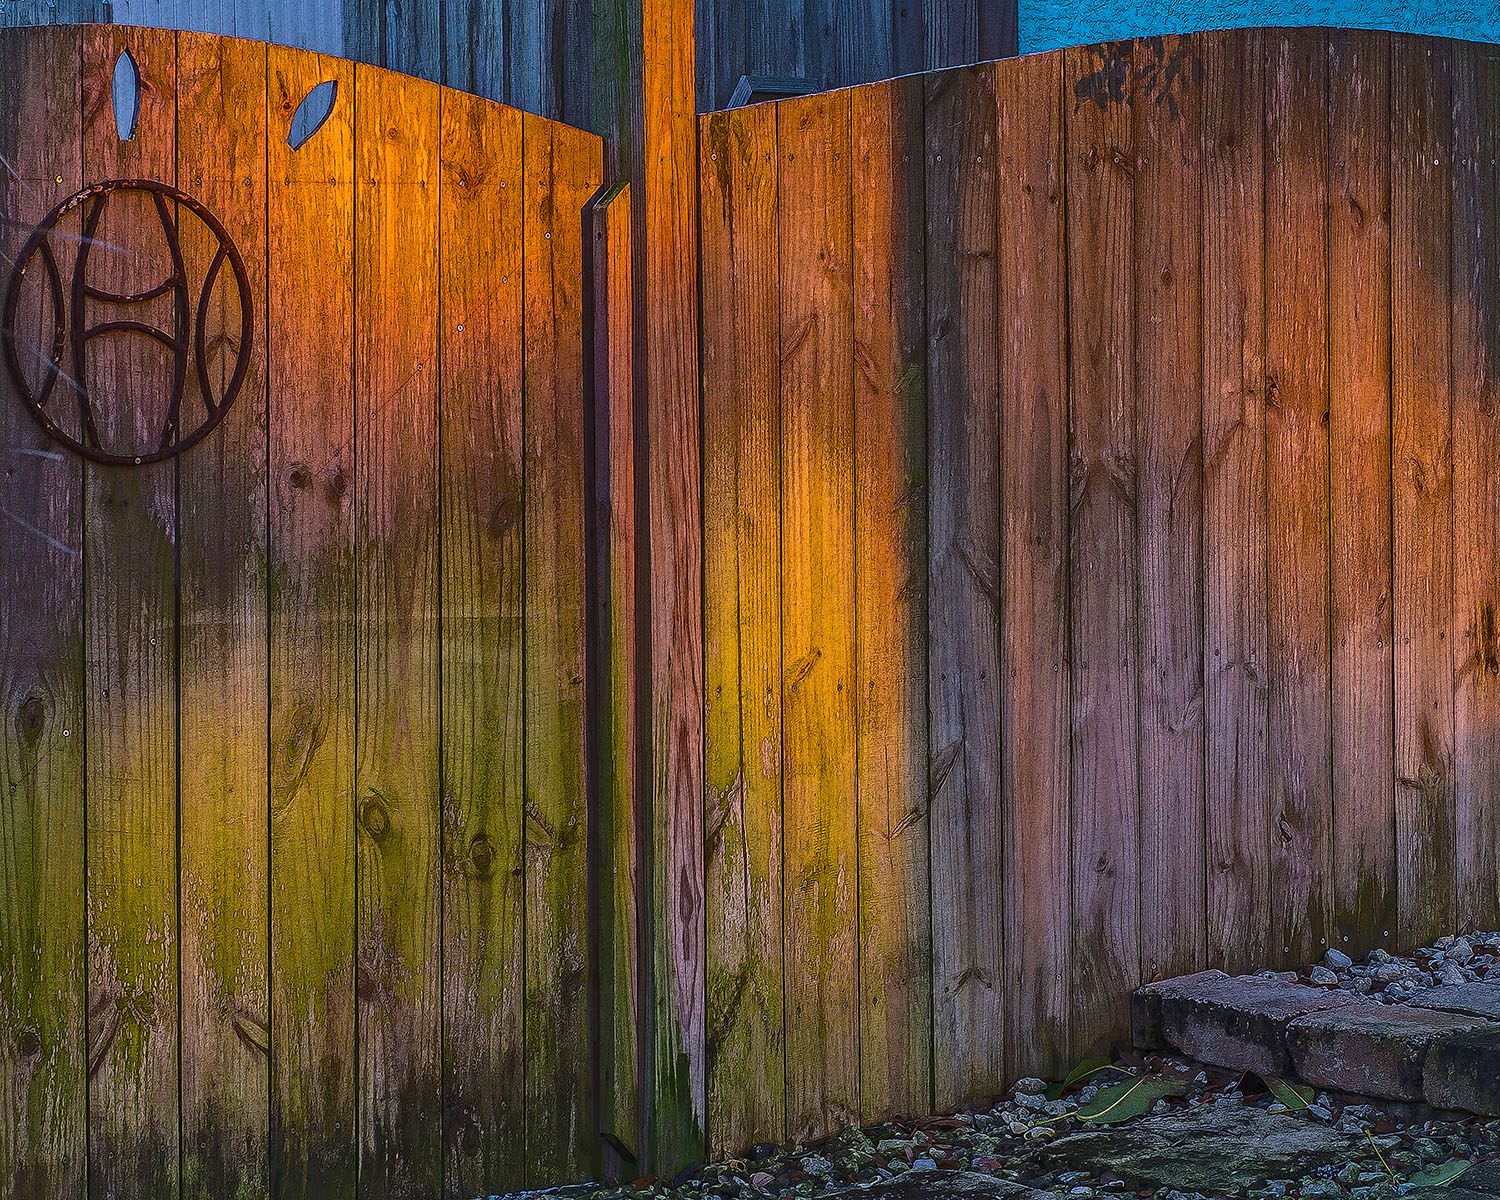 White Balance Sunset Fence - How Color Balance Can Kill Your Color